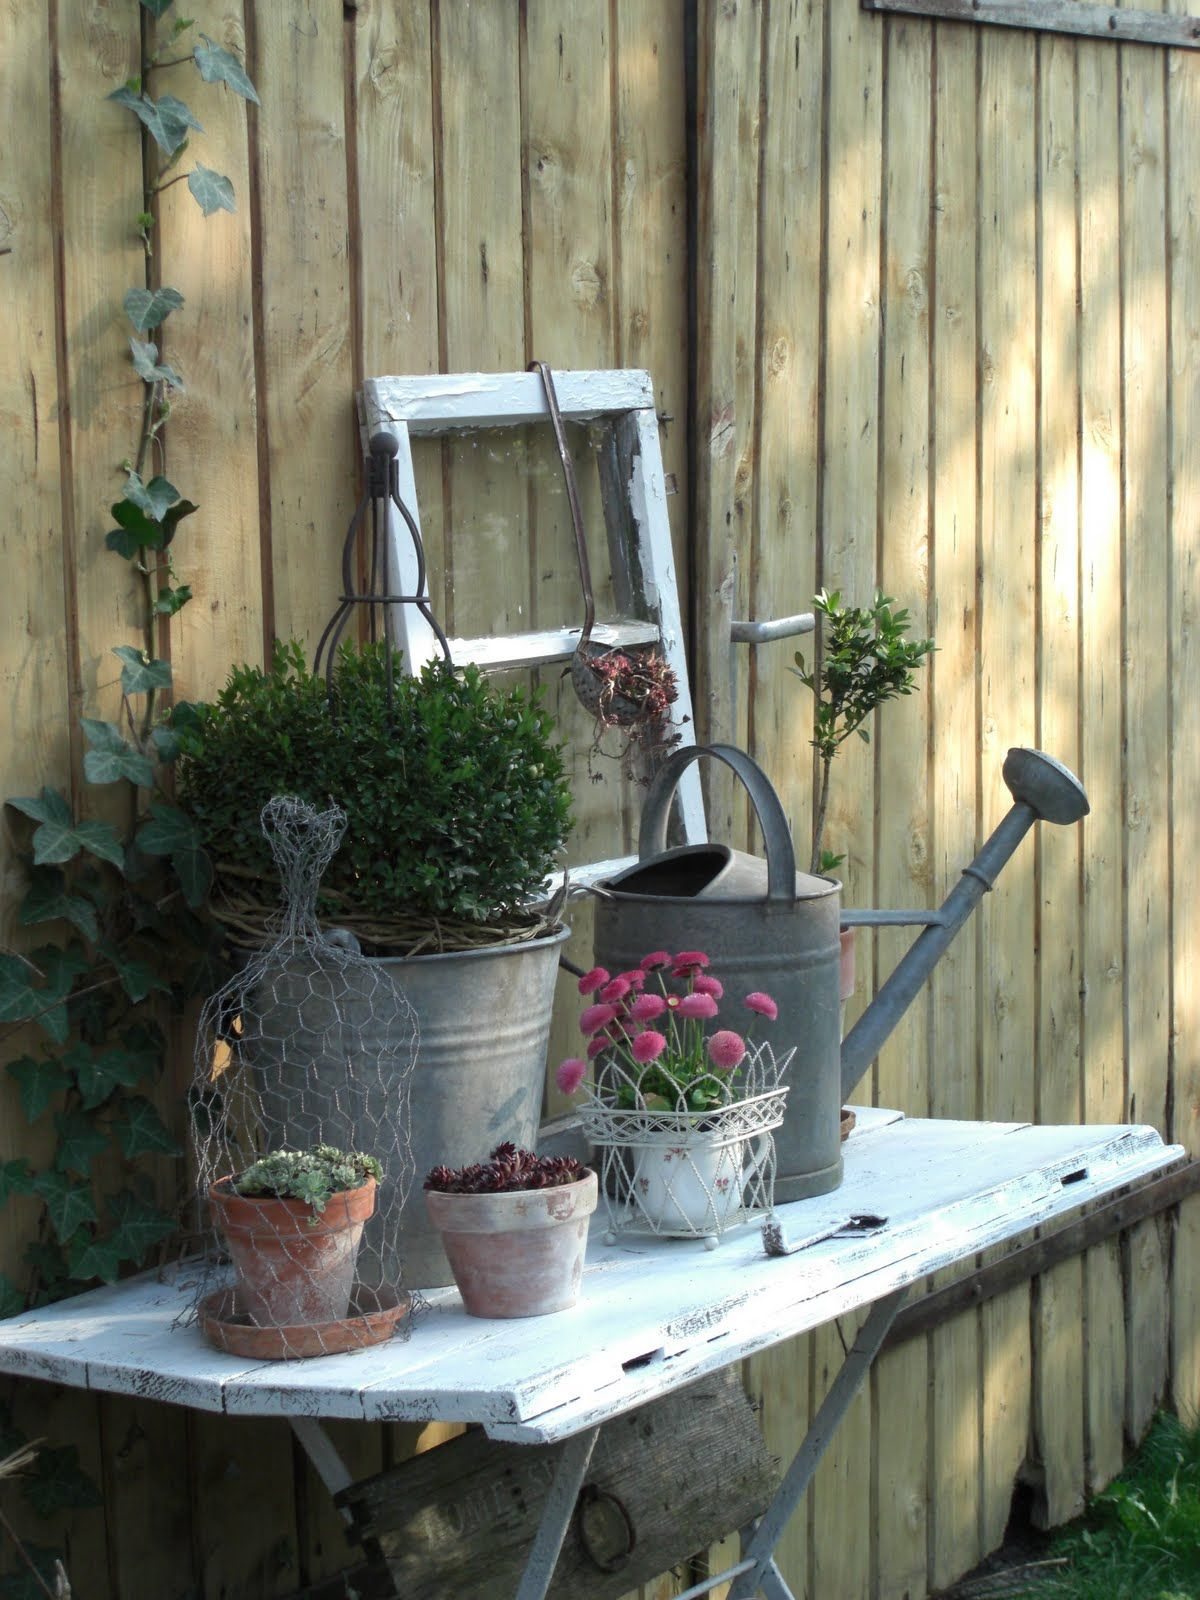 Gardening Table Old Boards Aged Clay Pots Vintage Watering Cans